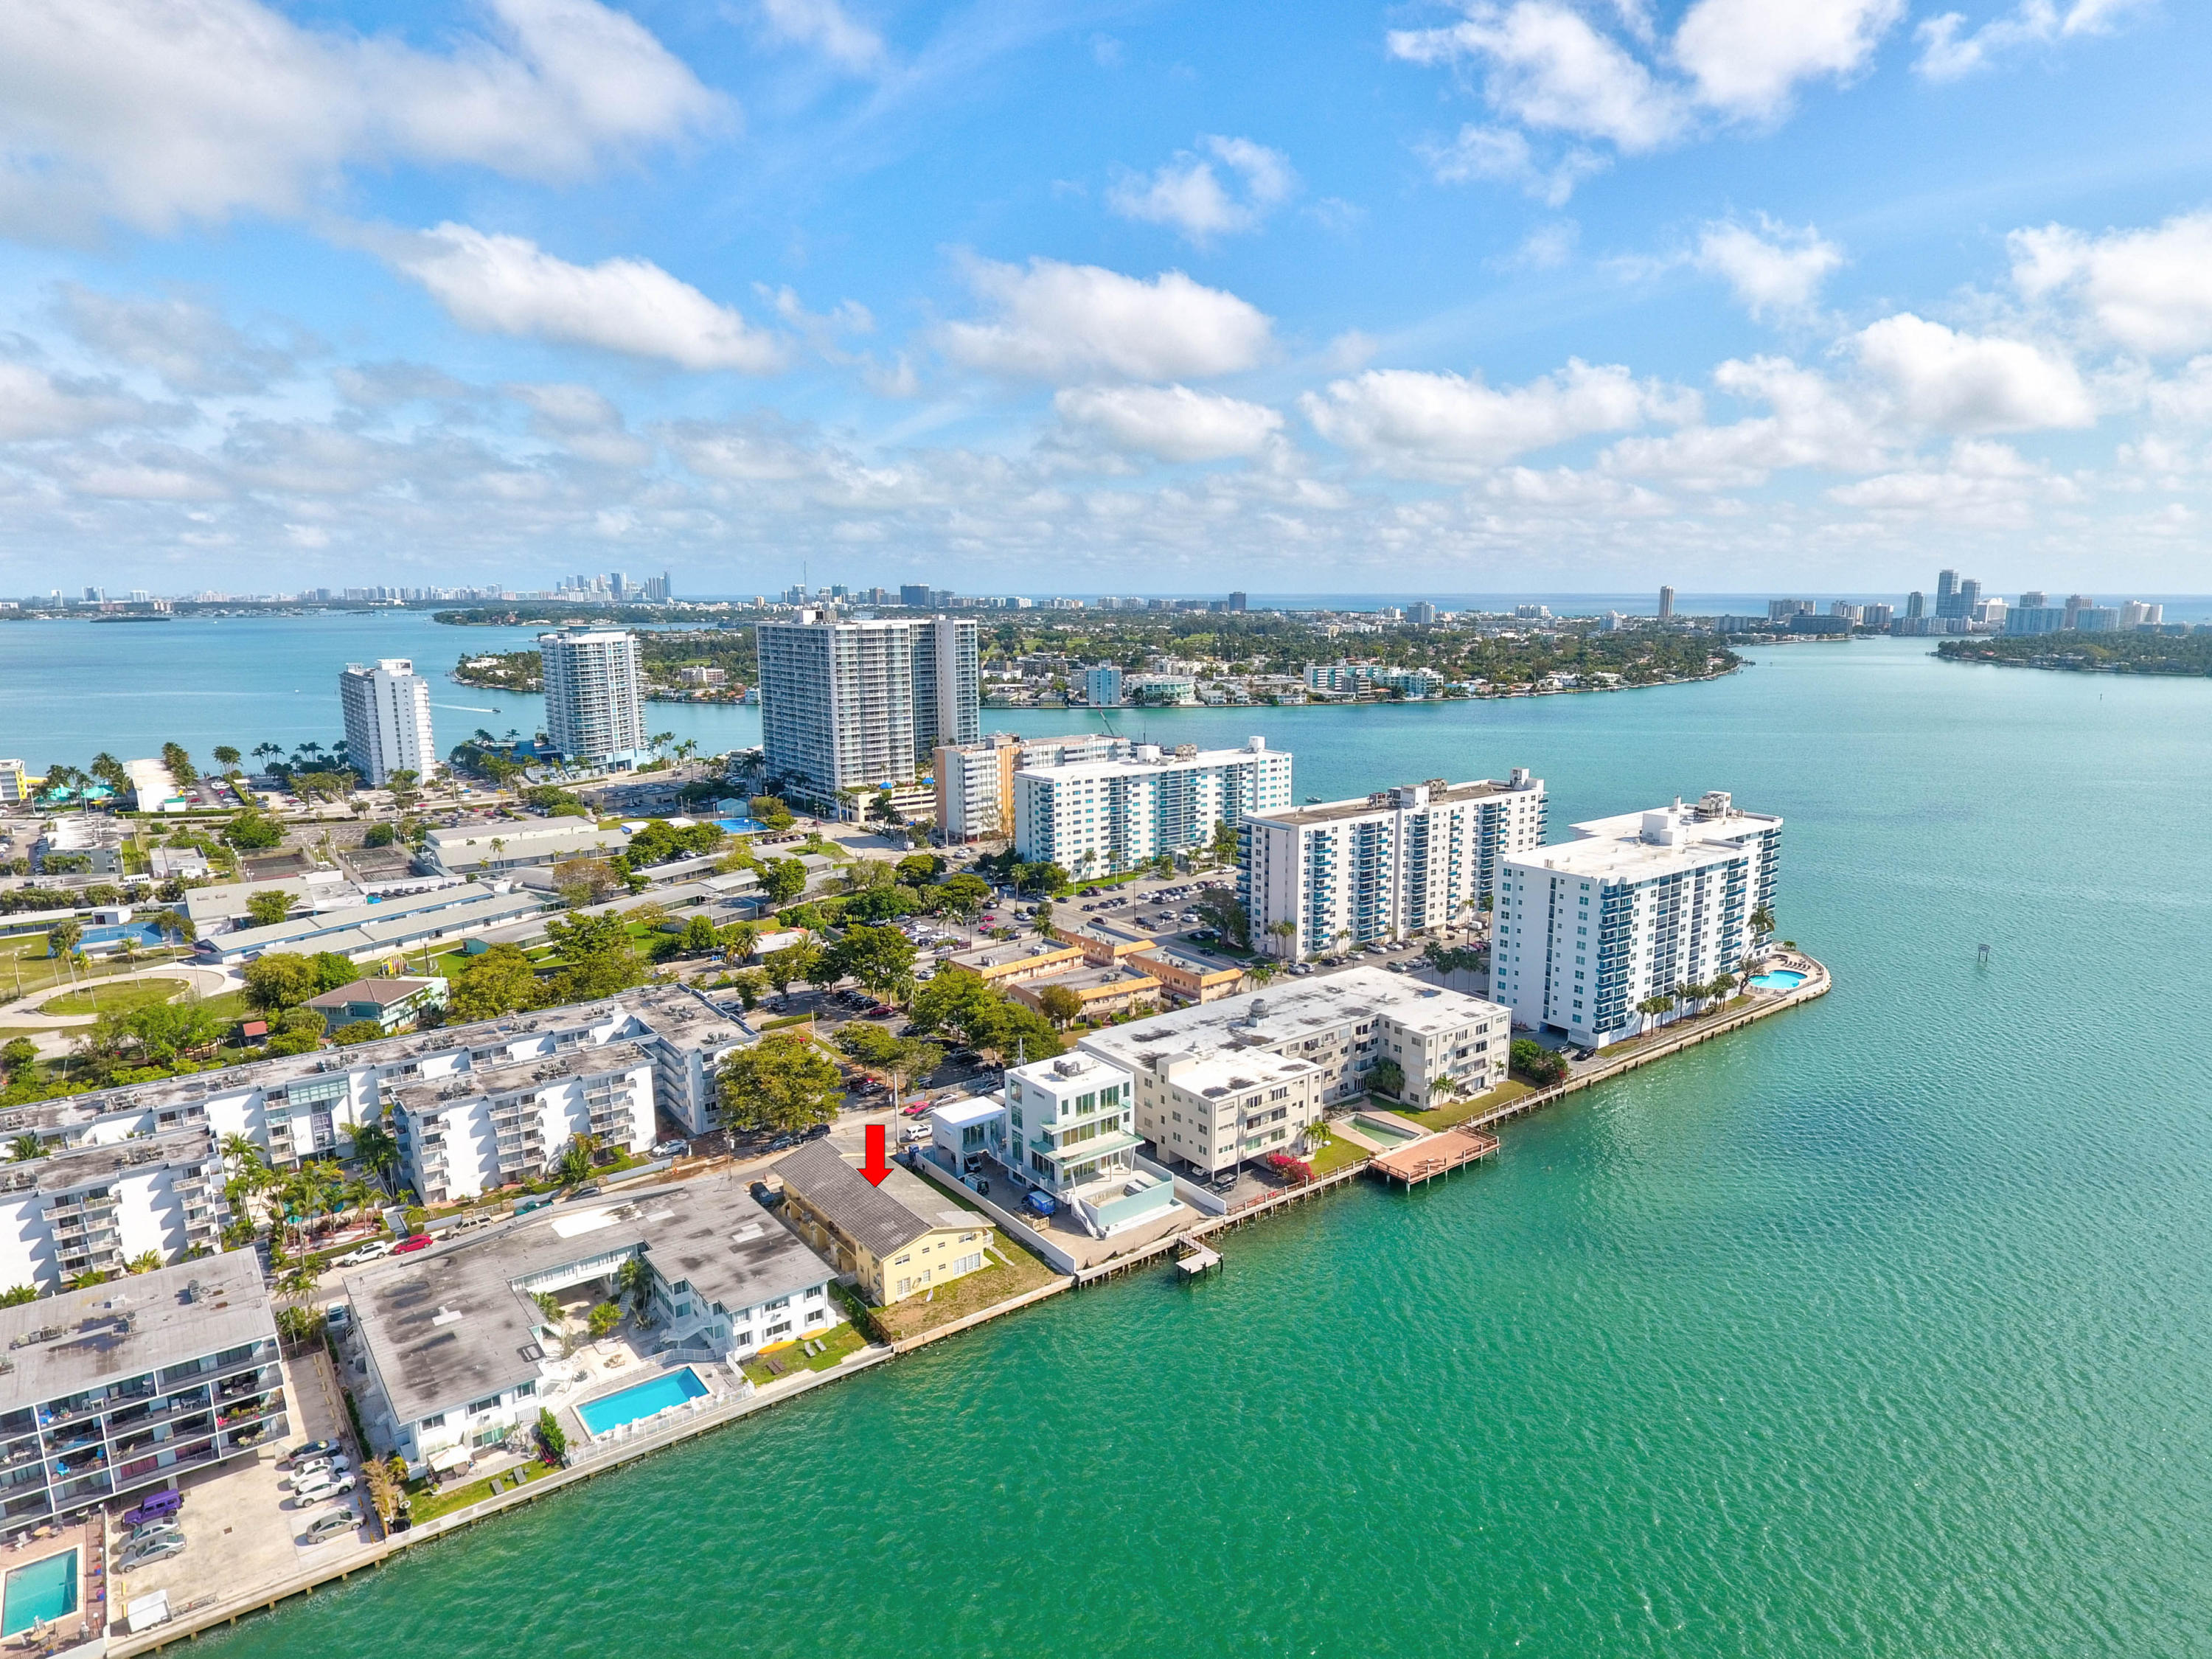 FANTASTIC 10-UNIT APARTMENT BUILDING ON THE INTRACOASTAL. INCREDIBLE OPEN BAY VIEWS FROM THIS 2-STORY CBS BLDG W/2- 2/2'S AND 8- 1/1'S ON A LARGE 12,000 SF LOT ON A VERY PRIVATE AND TRANQUIL STREET. CONSISTENTLY FULLY RENTED, PROPERTY FEATURES UPSIDE AS SOME UNITS ARE RENOVATED & SOME OTHERS CAN BENEFIT FROM A UNIT IMPROVEMENT PROGRAM; RENTS CAN BE CONSIDERED LOWER FOR THE AREA. UNITS INDIVIDUALLY METERED FOR ELECTRIC; OWNER PAYS FOR WATER. CAN BE SOLD TOGETHER WITH A 16-UNIT IN SOUTH BEACH, PLEASE INQUIRE. PROPERTY IS ON A GROUND LEASE (EXPIRES 08/14/2055; RENT IS $2,500/YEAR) WHICH -IF DESIRED- CAN BE CANCELLED UPON CLOSING OF THE LOT & THE BUILDING, IF SOLD TO THE SAME BUYER. BUILDING IS OFFERED AT $1,500,000 AND LOT IS OFFERED SEPARATELY AT $1,000,000. SEE MORE IN SUPPLEMENT REMARKS. LOCATED IN BEAUTIFUL NORTH BAY VILLAGE, THE PROPERTY IS JUST 2 BLOCKS AWAY FROM NE 79th ST/NORMANDY DR. FROM THERE, IT CONNECTS MIAMI TO MIAMI BEACH MAKING THE PROPERTY ACCESSIBLE TO ALL THE AREA'S FANTASTIC RESTAURANTS, SHOPPING, ENTERTAINMENT AND FAMOUS MIAMI BEACHES. IN ADDITION, GOING WEST, IT IS EASILY ACCESSIBLE TO THE GOLDEN GLADES INTERCHANGE AND FROM THERE TO MAJOR SOUTH FLORIDA DESTINATIONS.